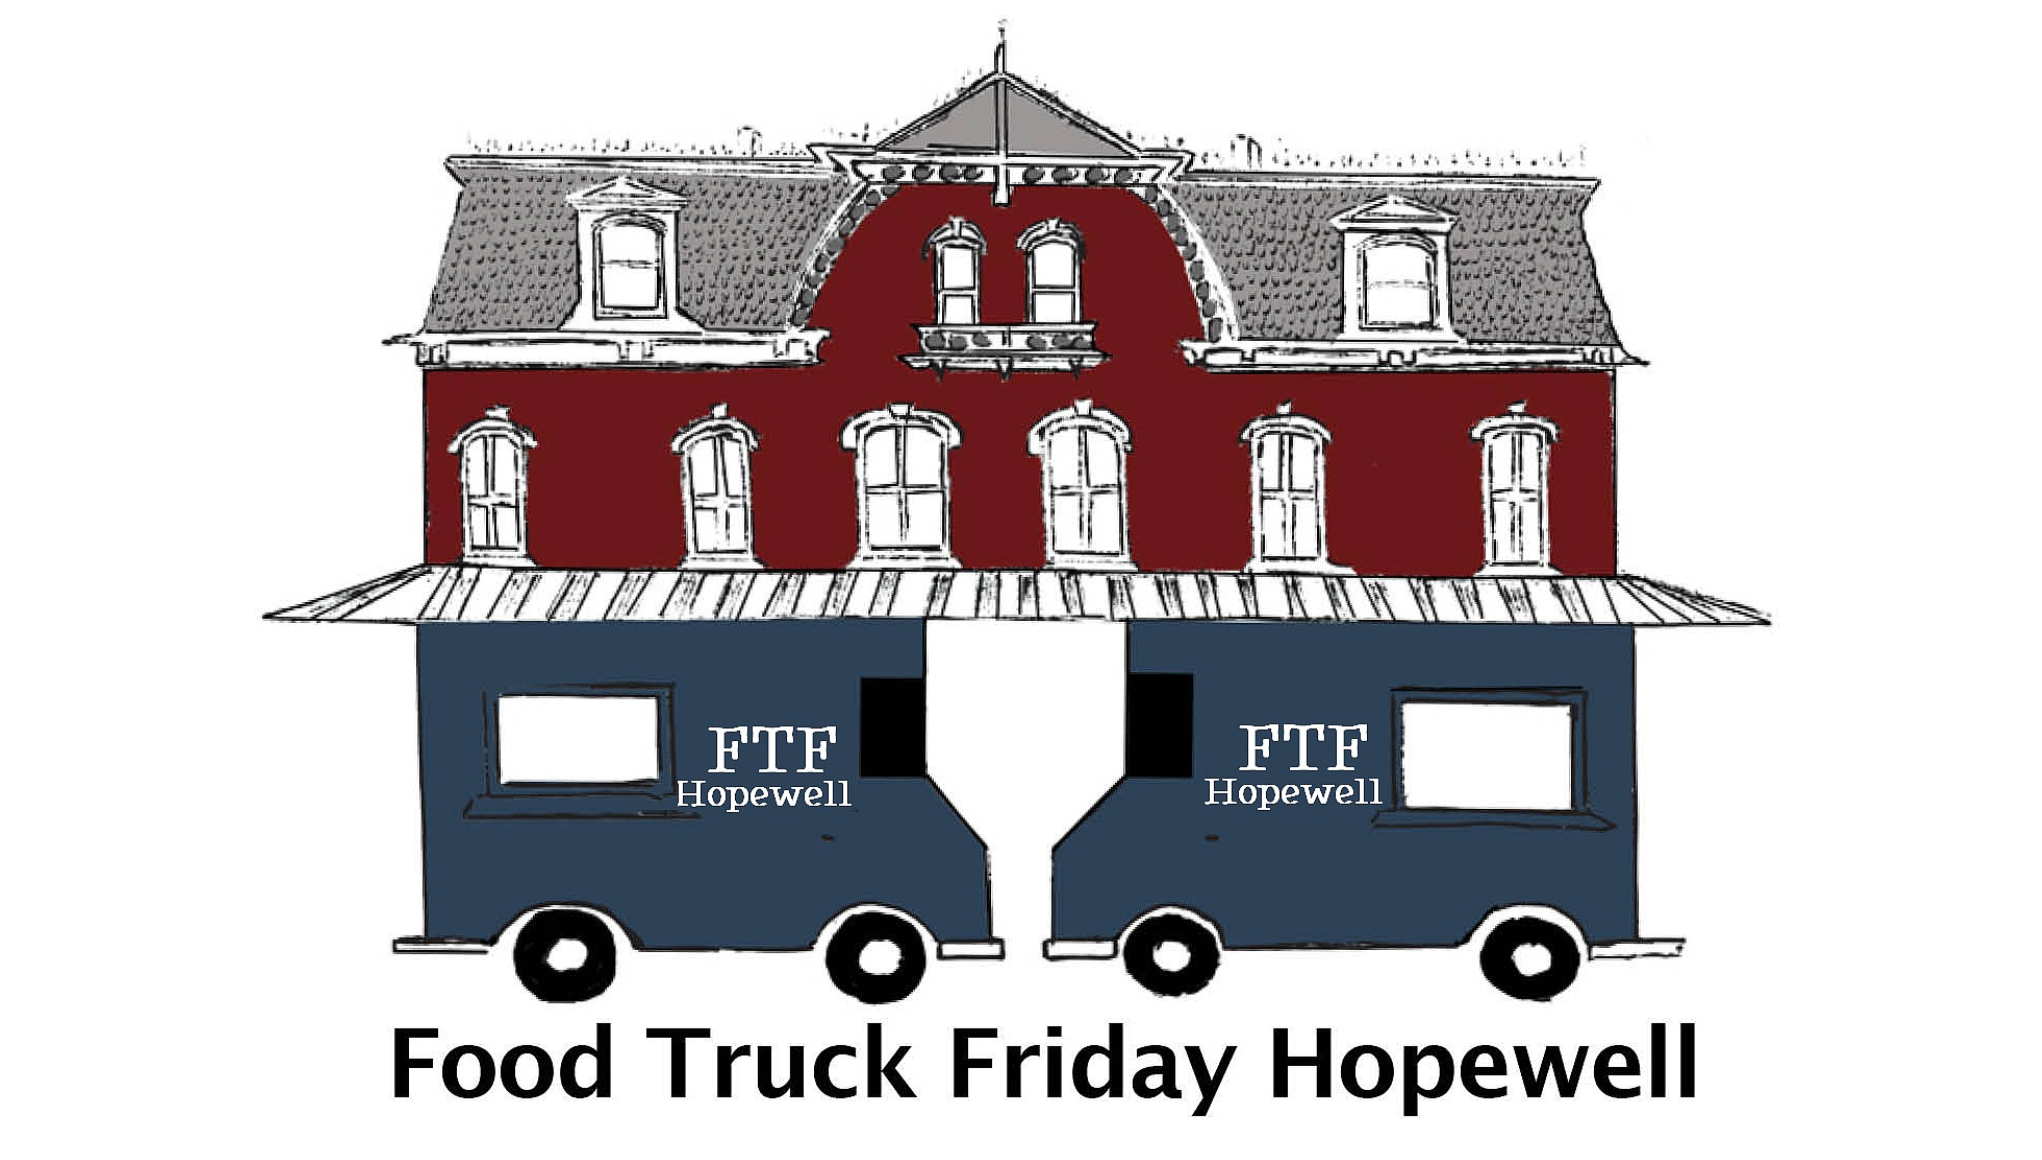 Food Truck Friday Comes Back to Hopewell Boro with More Trucks than Ever